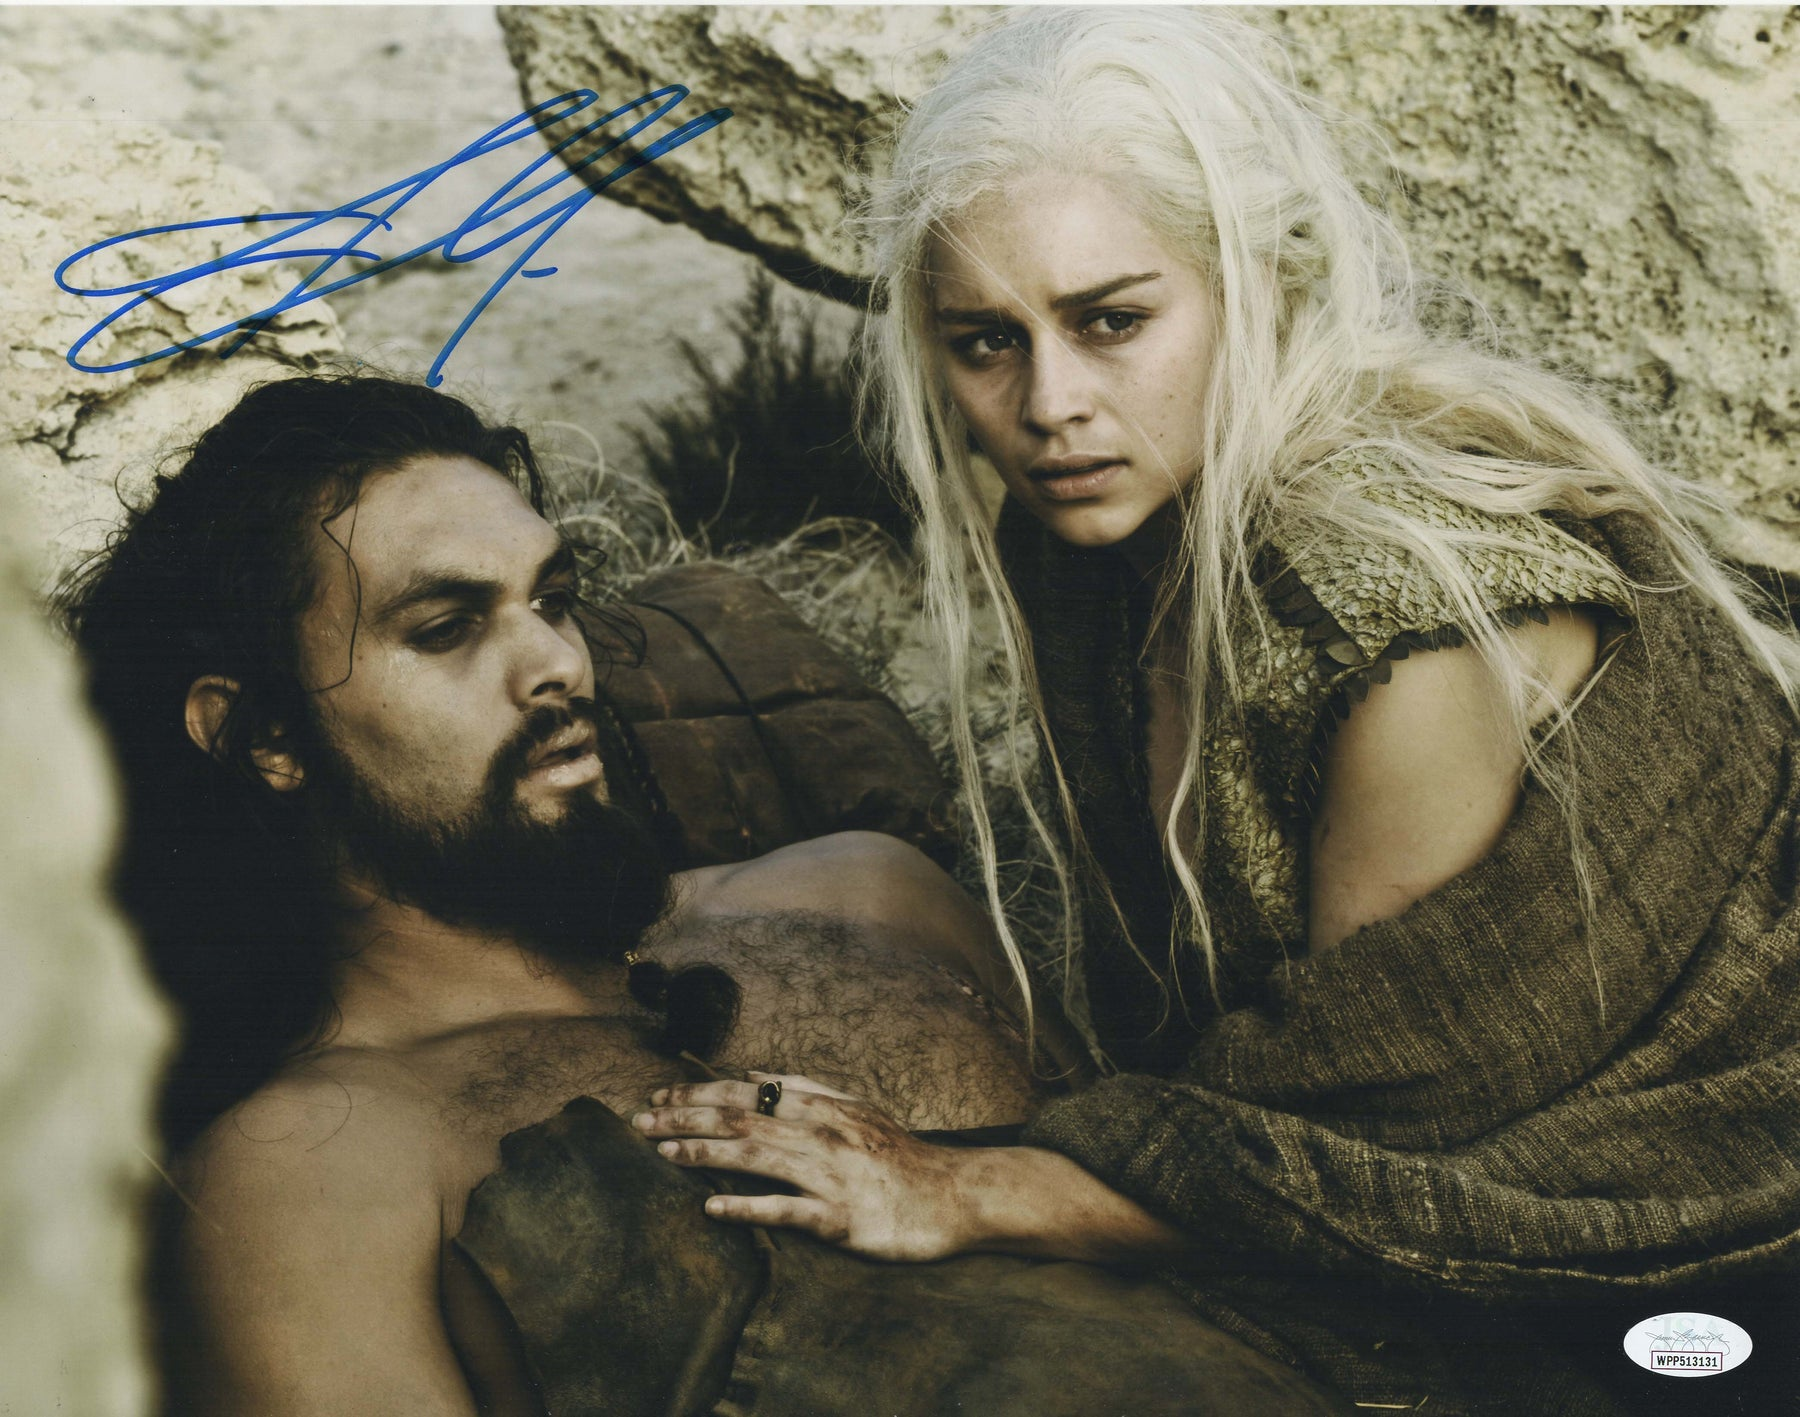 Jason Momoa Autograph 11x14 Photo Game of Thrones Khal Drogo Signed JSA 3